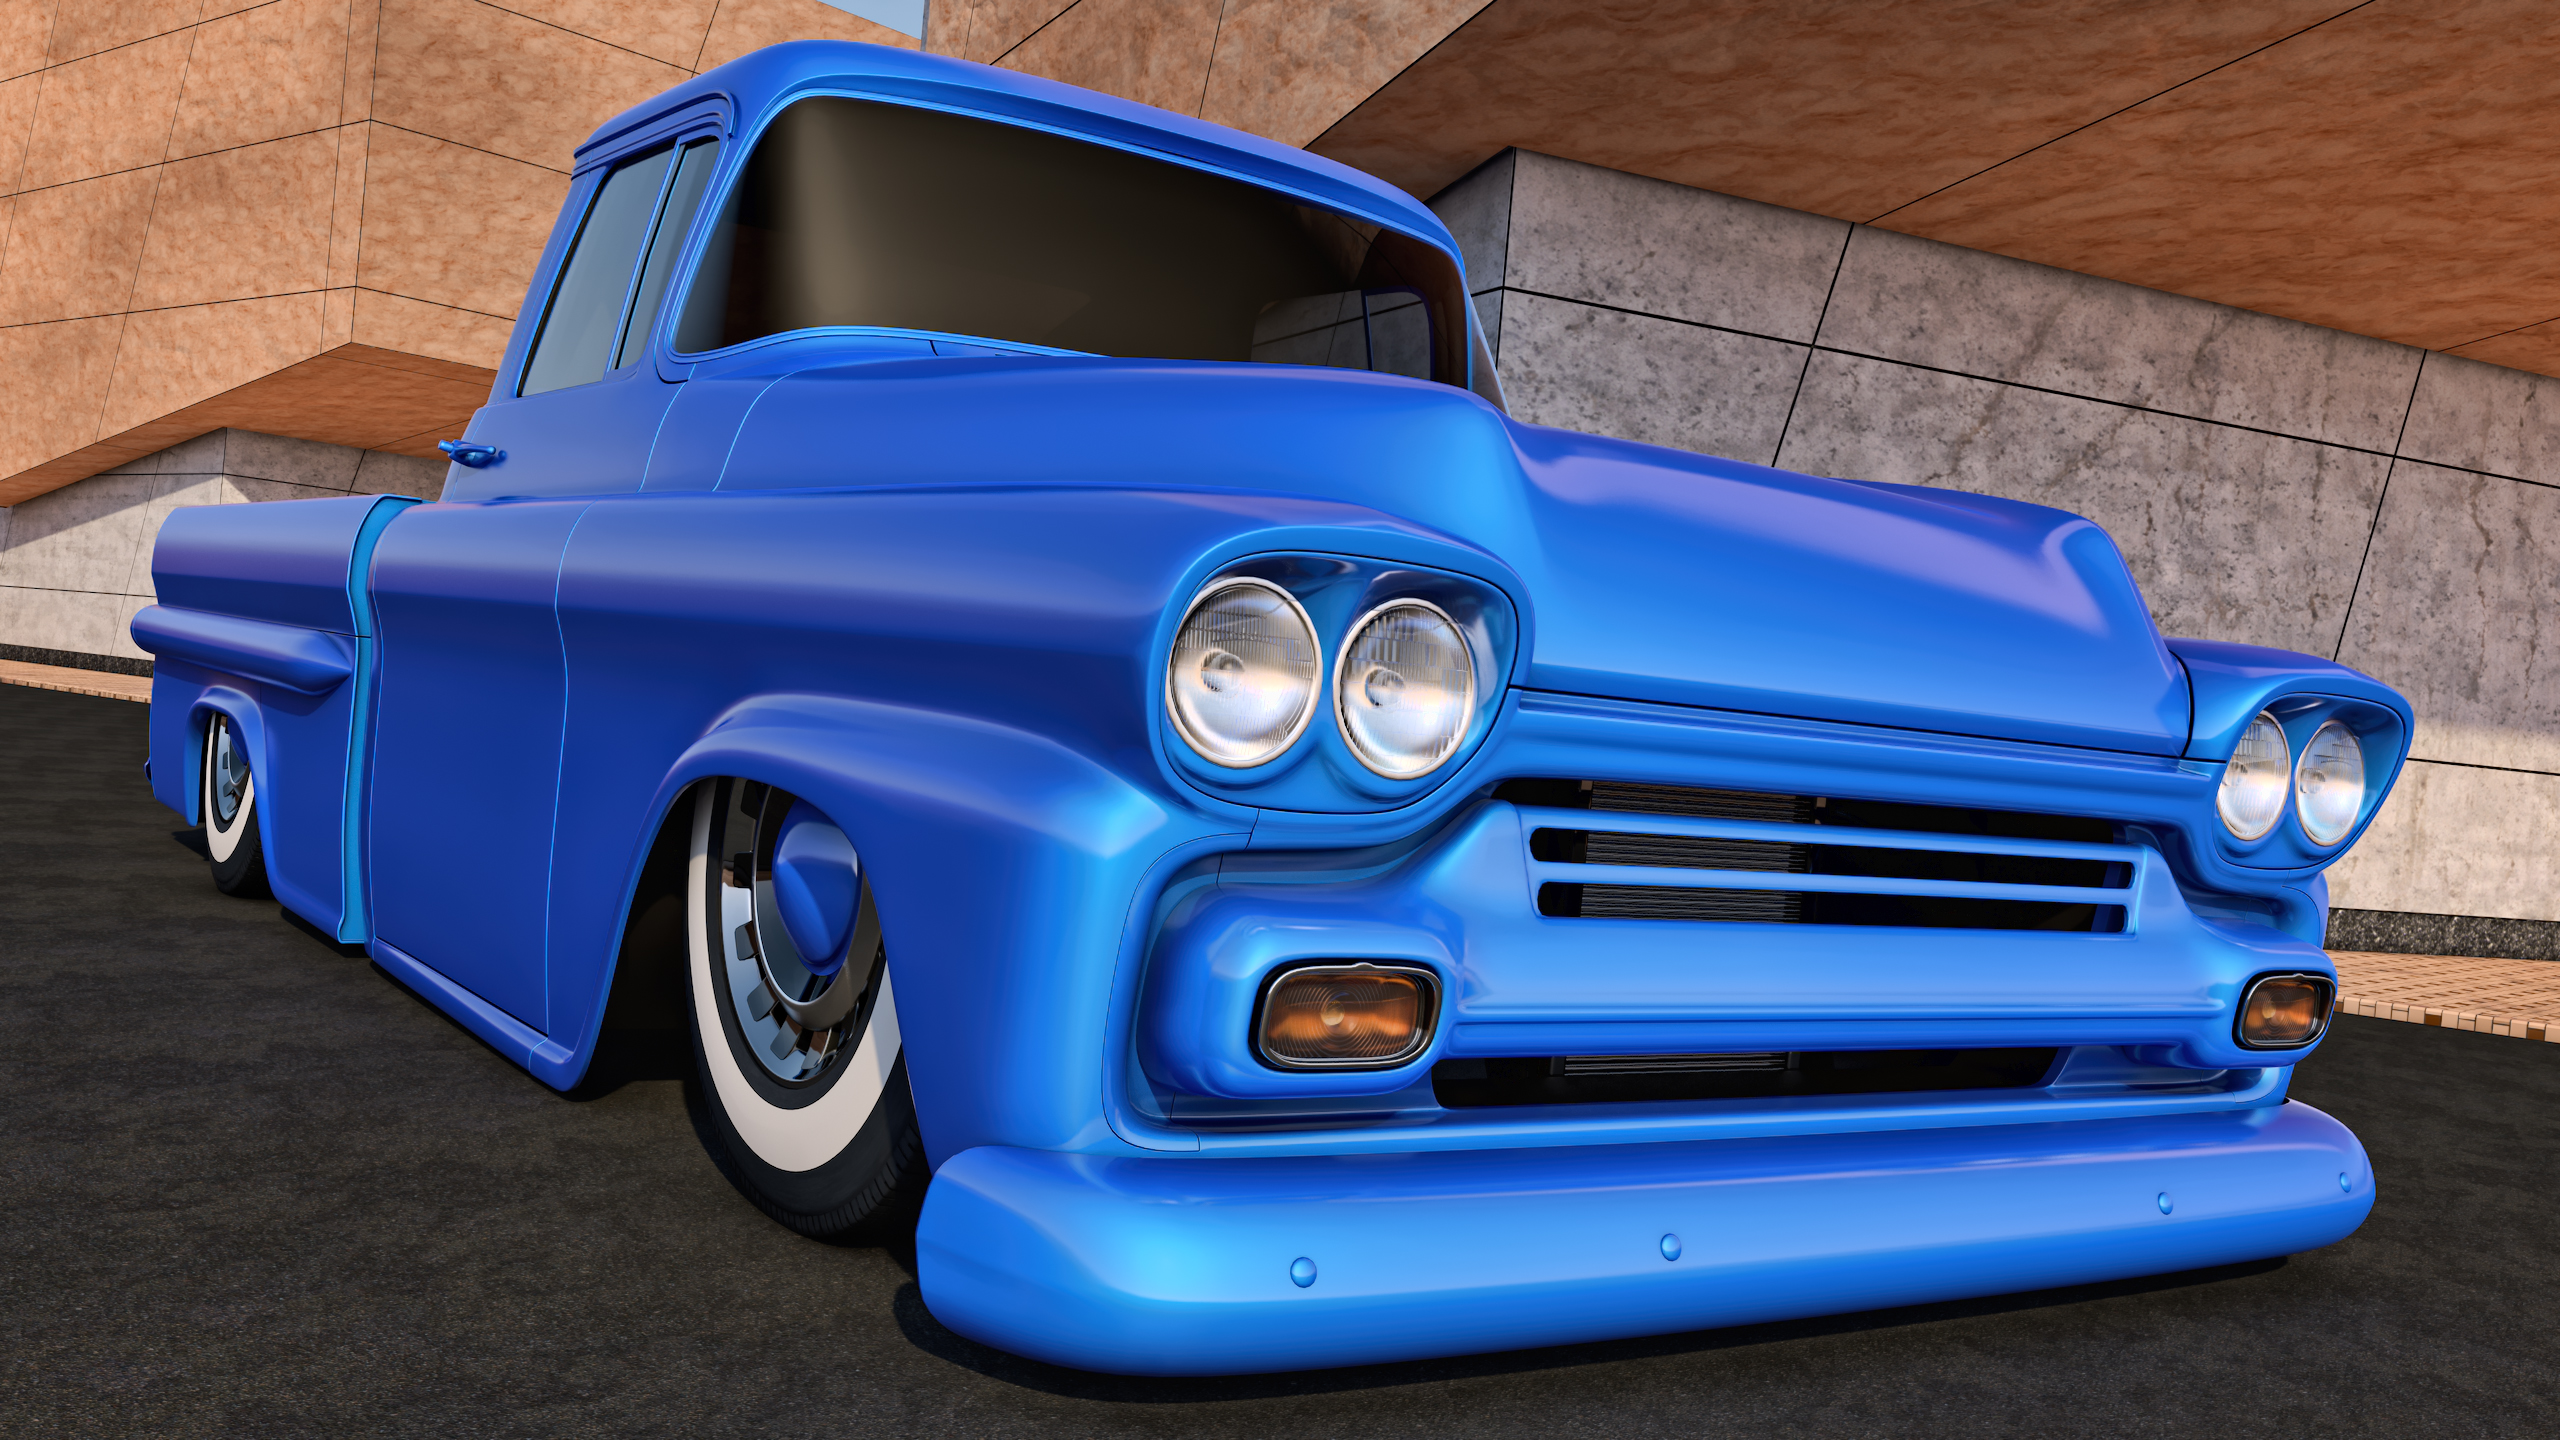 1958 Chevrolet Apache Pickup by SamCurry on DeviantArt